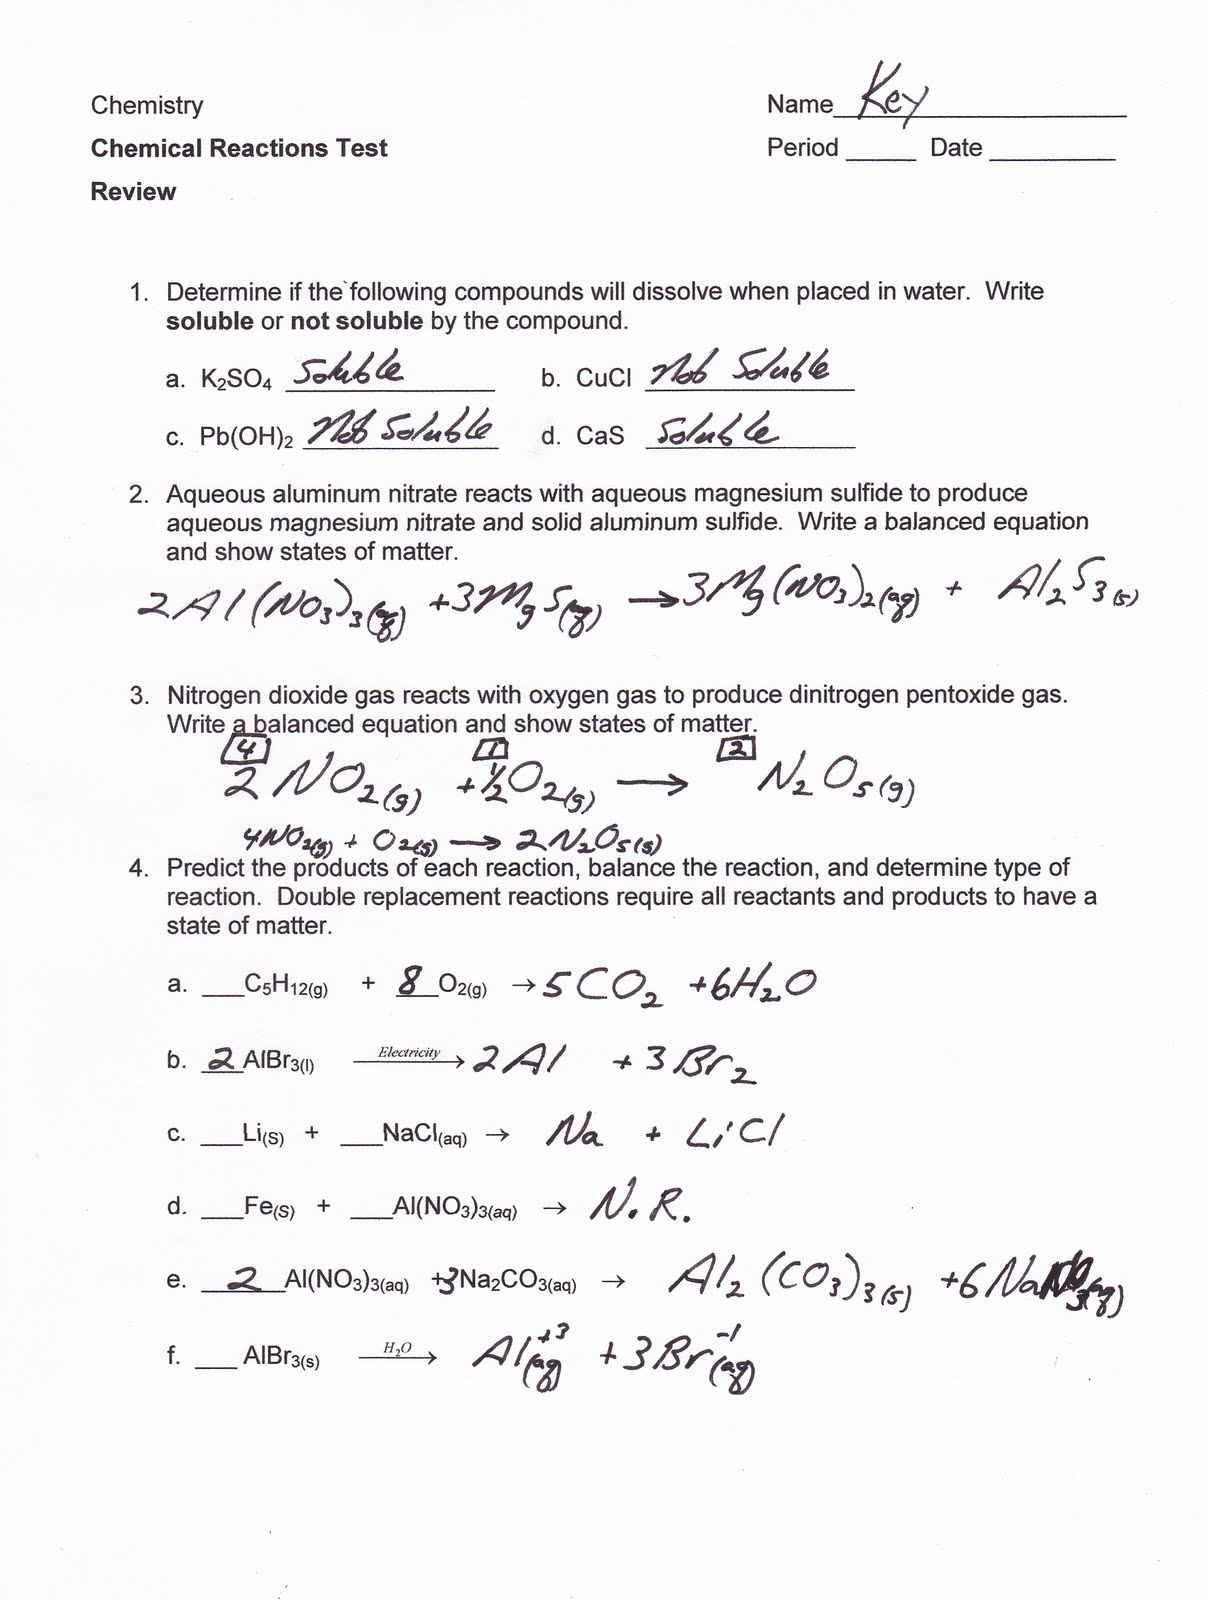 Uncategorized Worksheet 4 Single-replacement Reactions mr brueckners chemistry class hhs 2011 12 for those of you experiencing a little difficulty on the balancing chemical reactions worksheet i have some advice possible sticking point